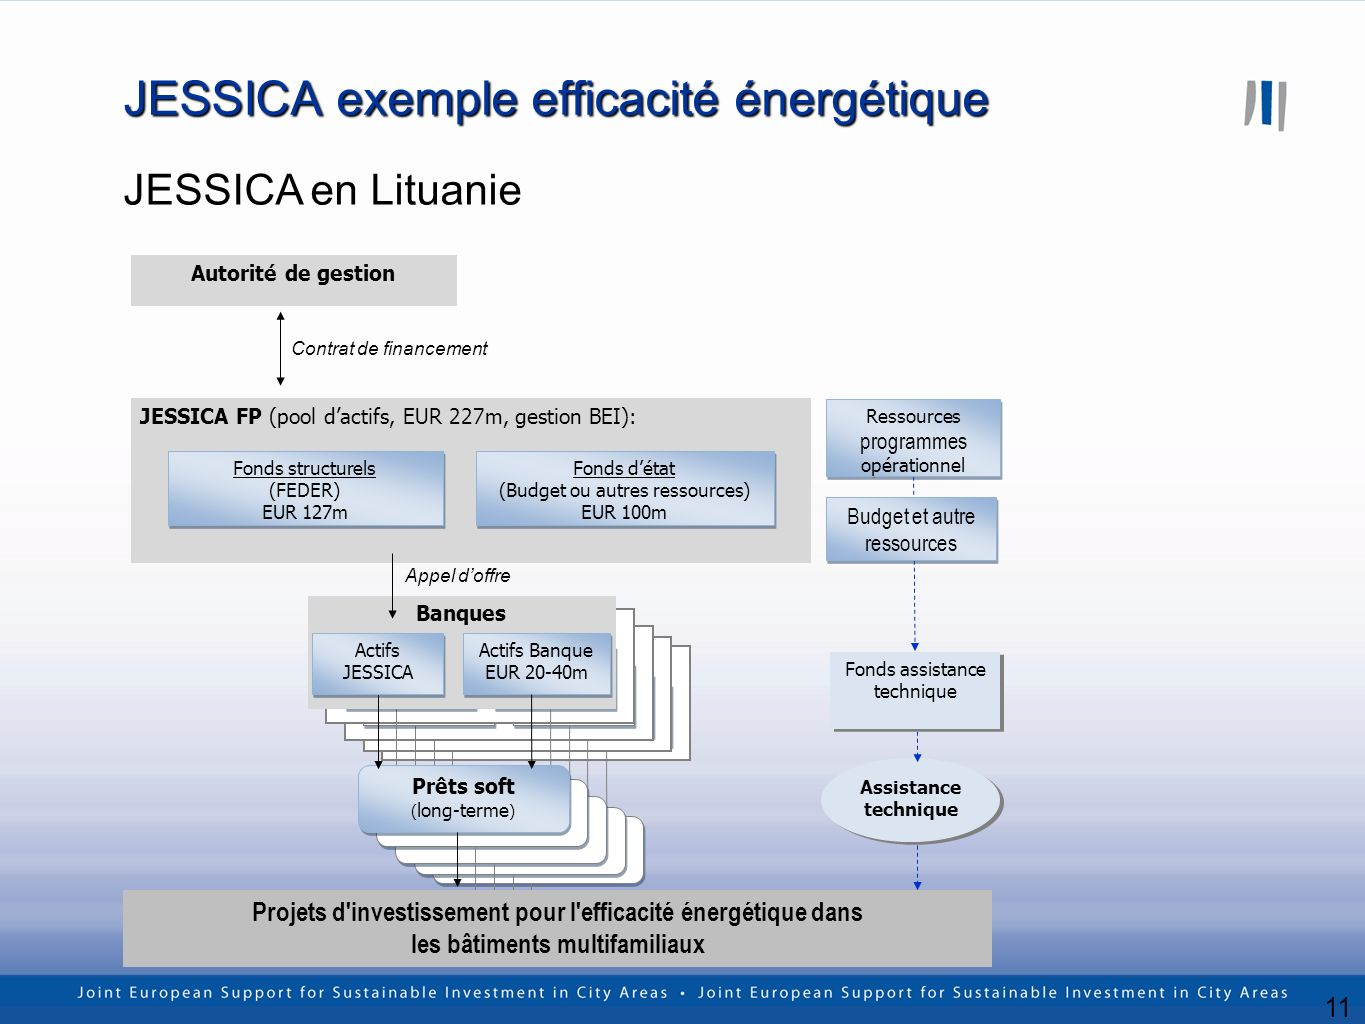 11 JESSICA exemple efficacité énergétique JESSICA en Lituanie Banks Soft loans (long-term) Soft loans (long-term) JESSICA assets Bank assets EUR 20-40